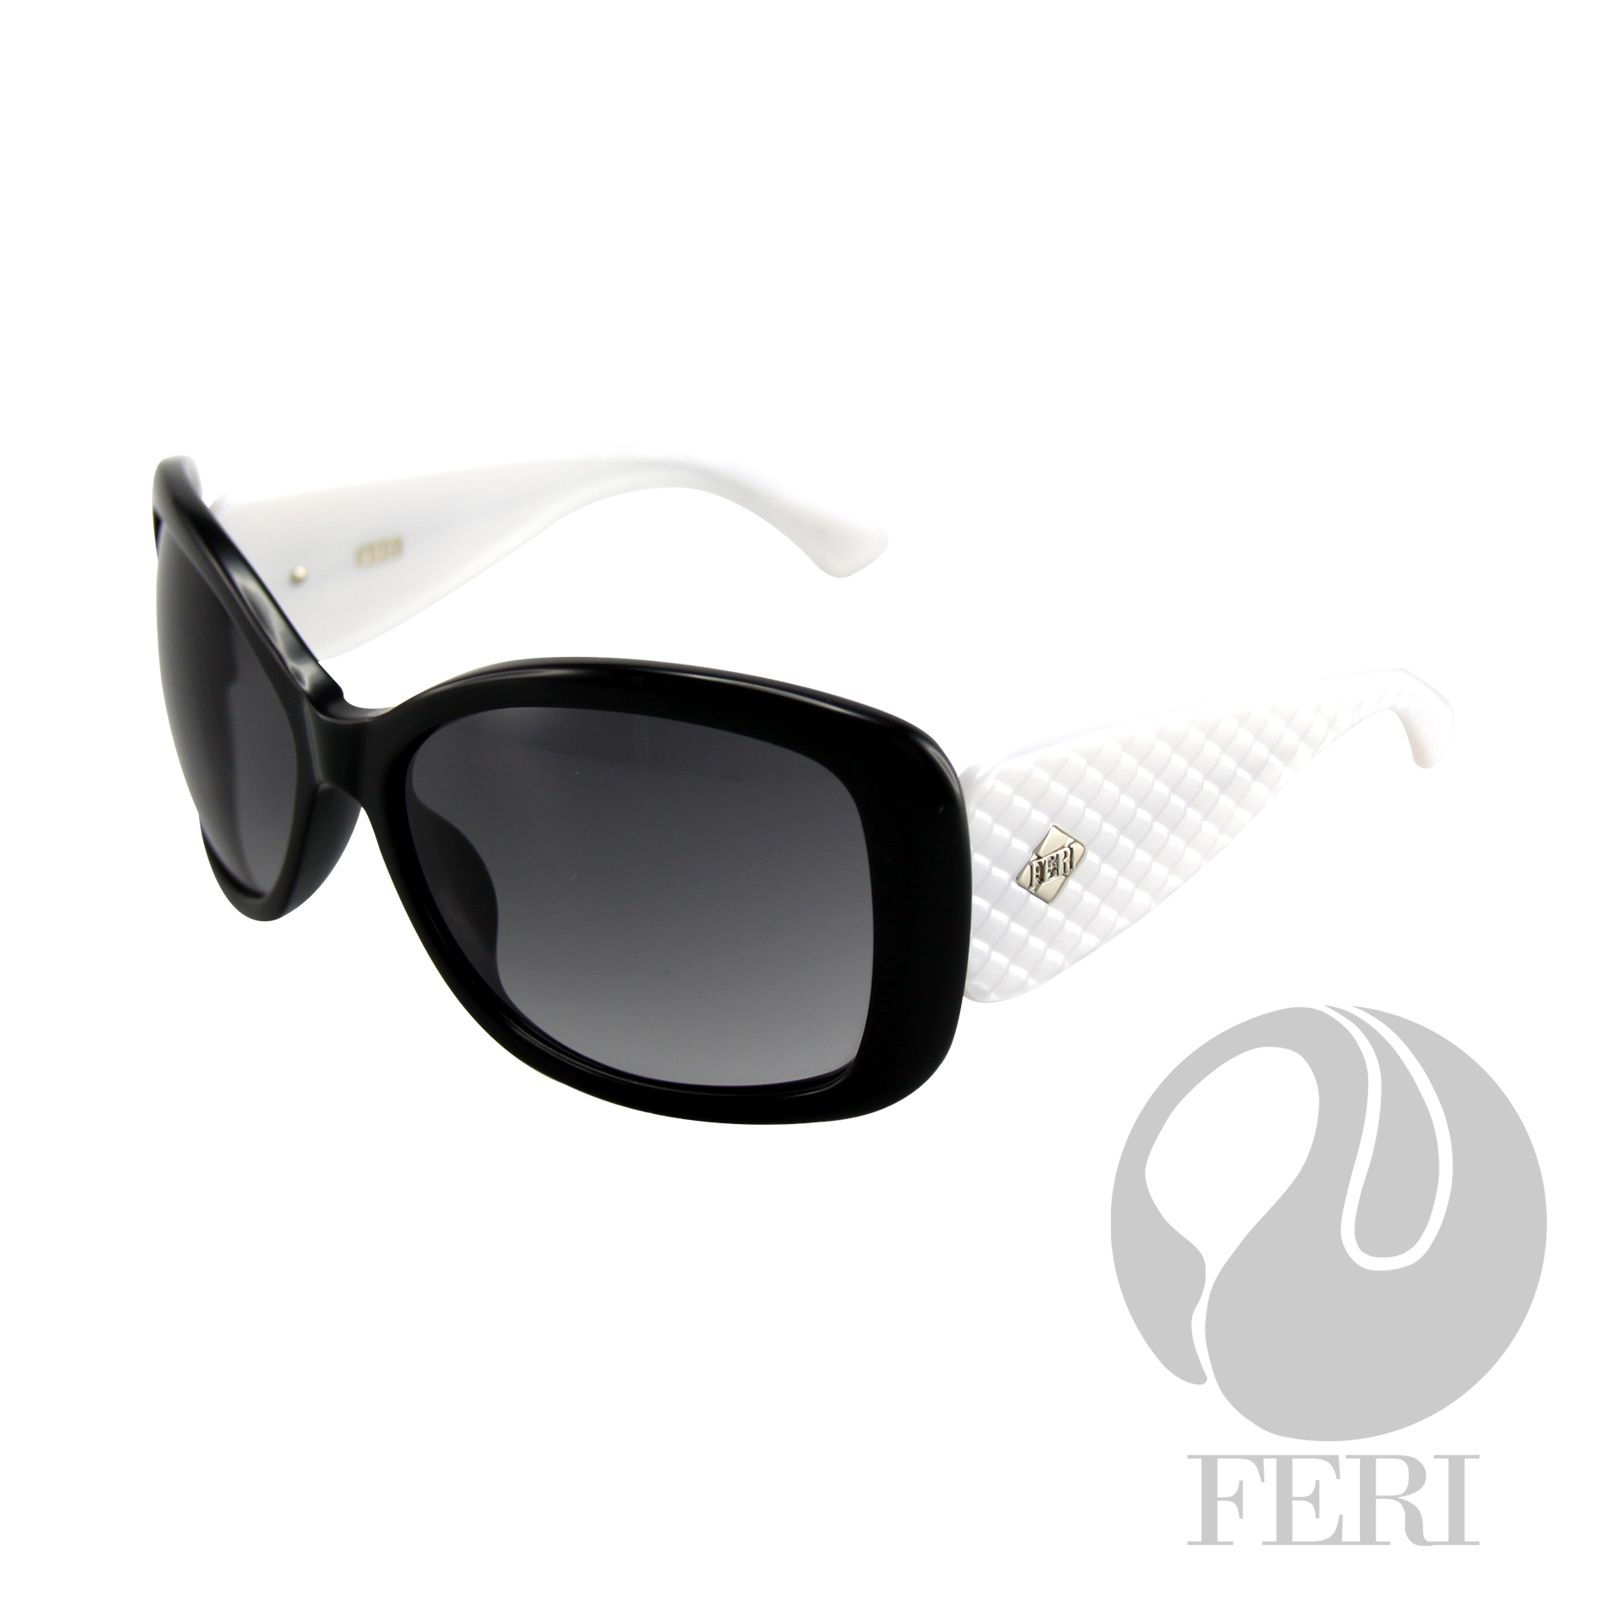 FERI frames are manufactured in Italy Lenses are UV